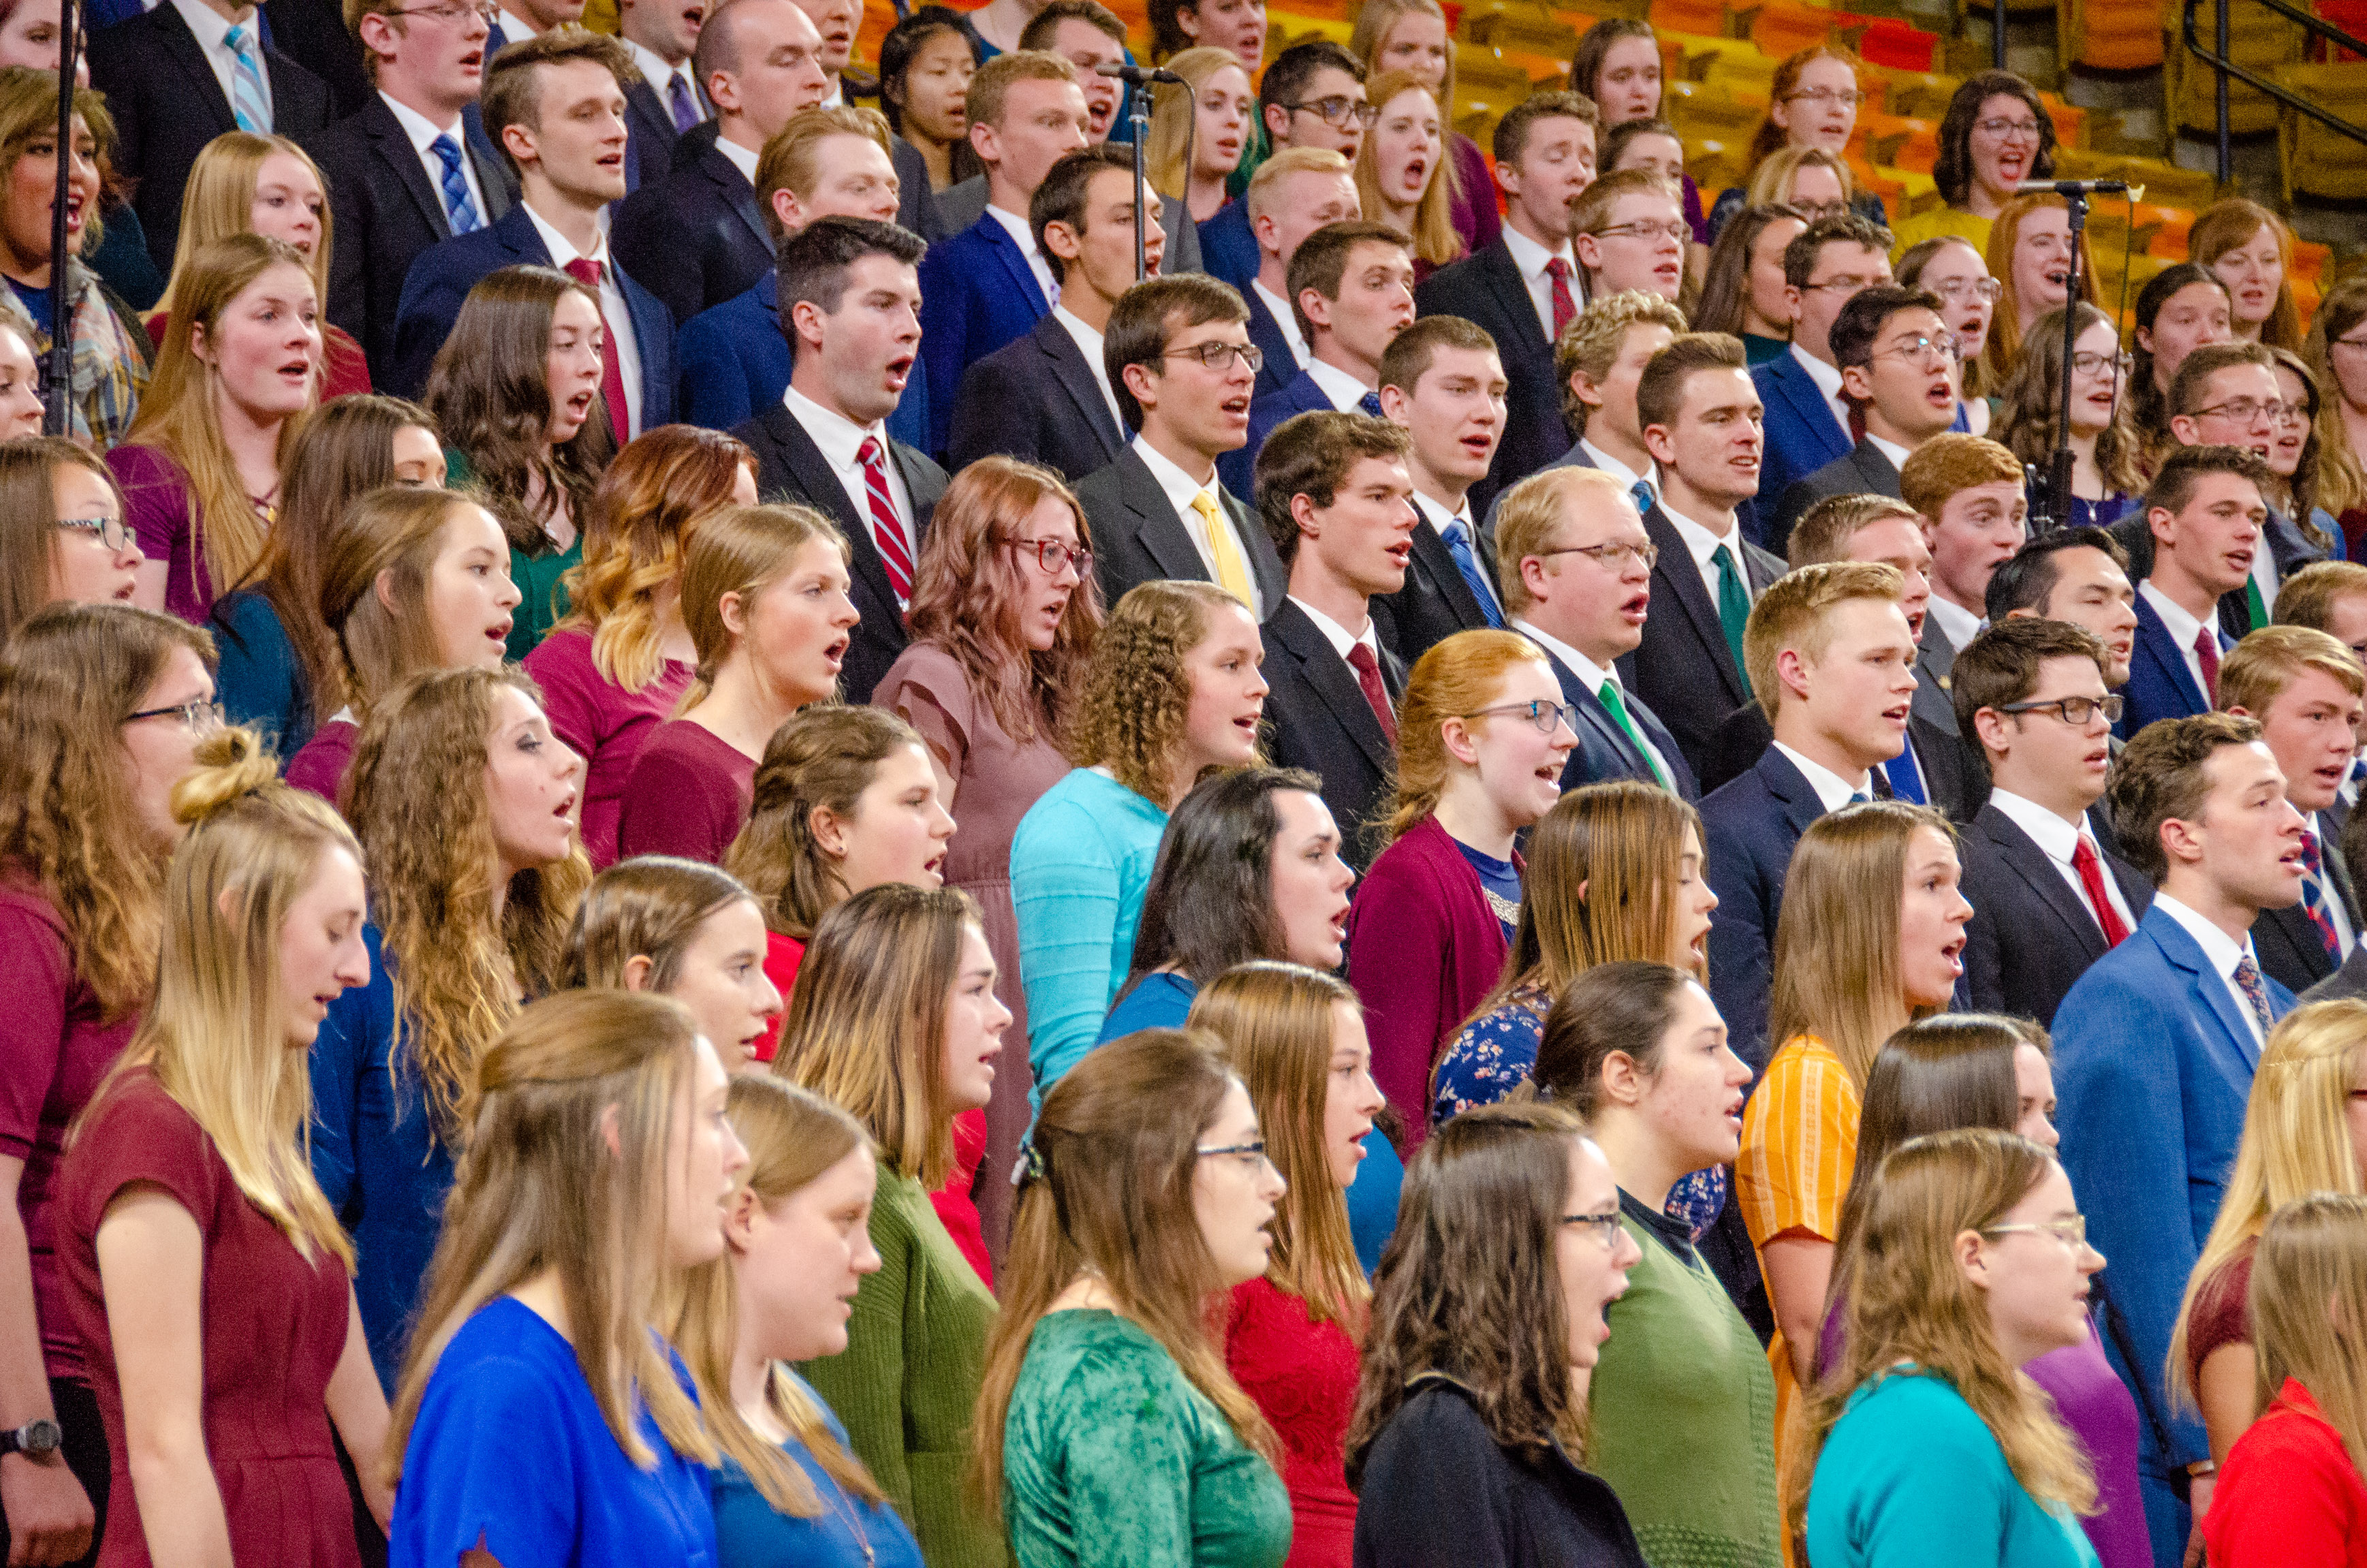 A combined institute choir sings during a devotional with Sister Sharon Eubank at the Dee Glen Smith Spectrum at Utah State University in Logan, Utah, on Sunday, Nov. 3, 2019.